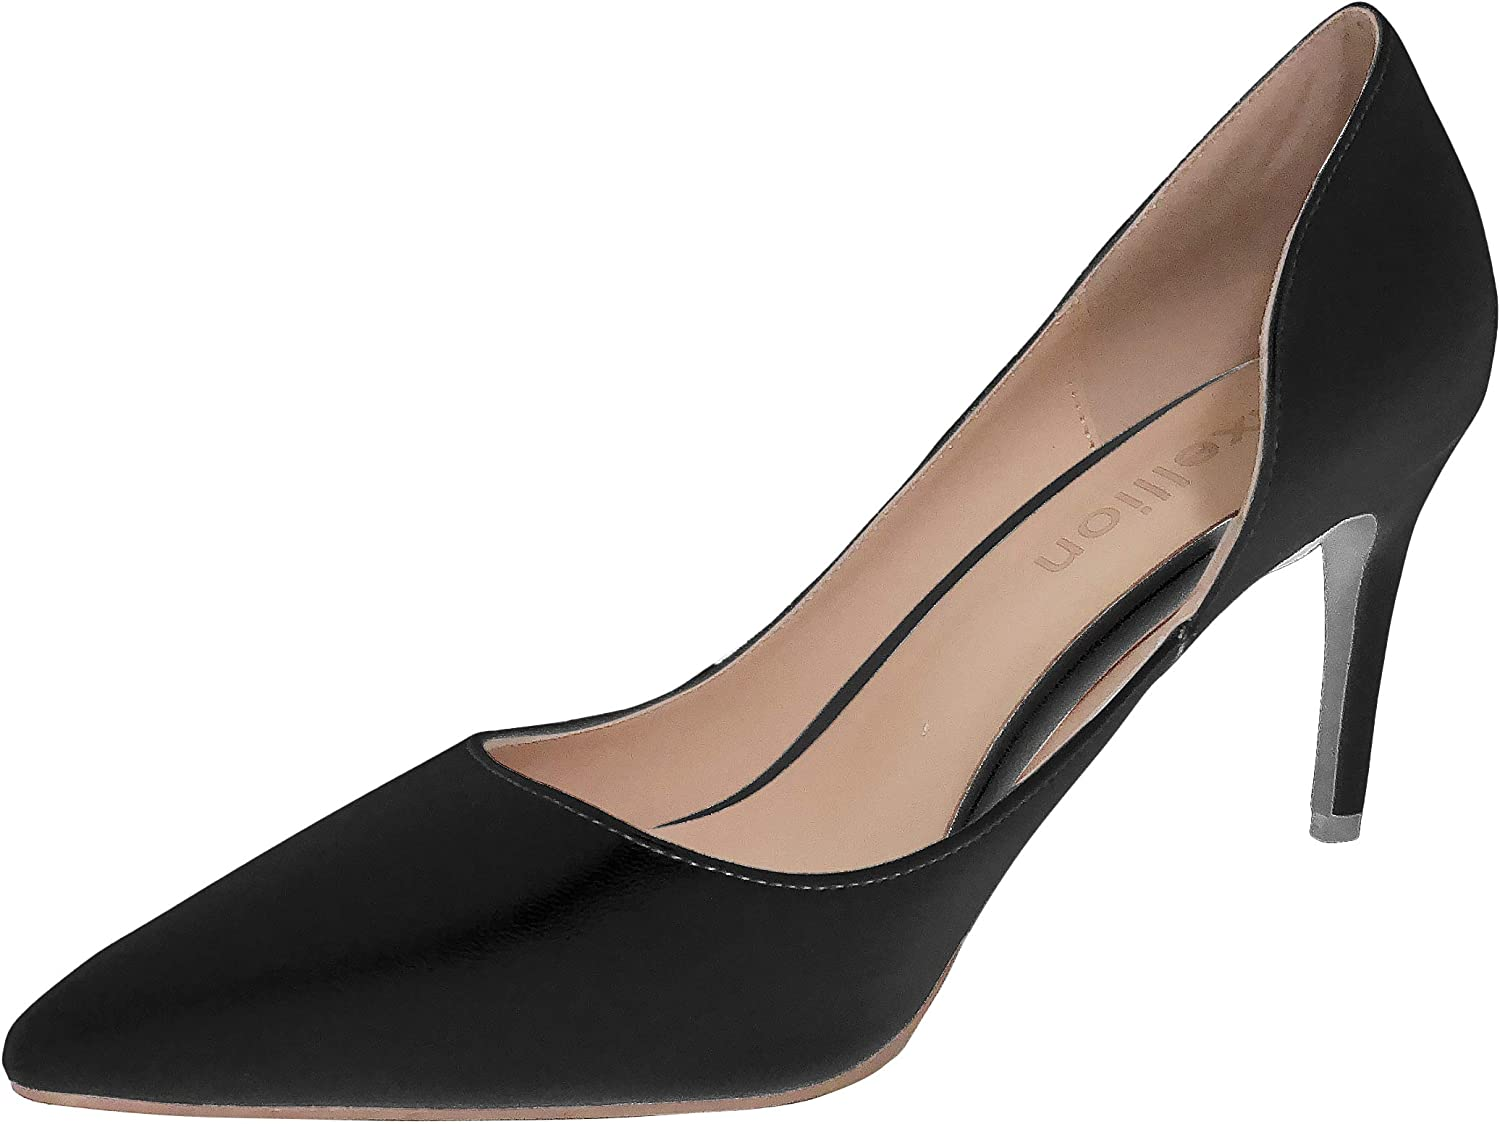 Axellion Pumps for Lady Woman's High Toe Shoes sold out Heel Year-end gift Pointed Pum